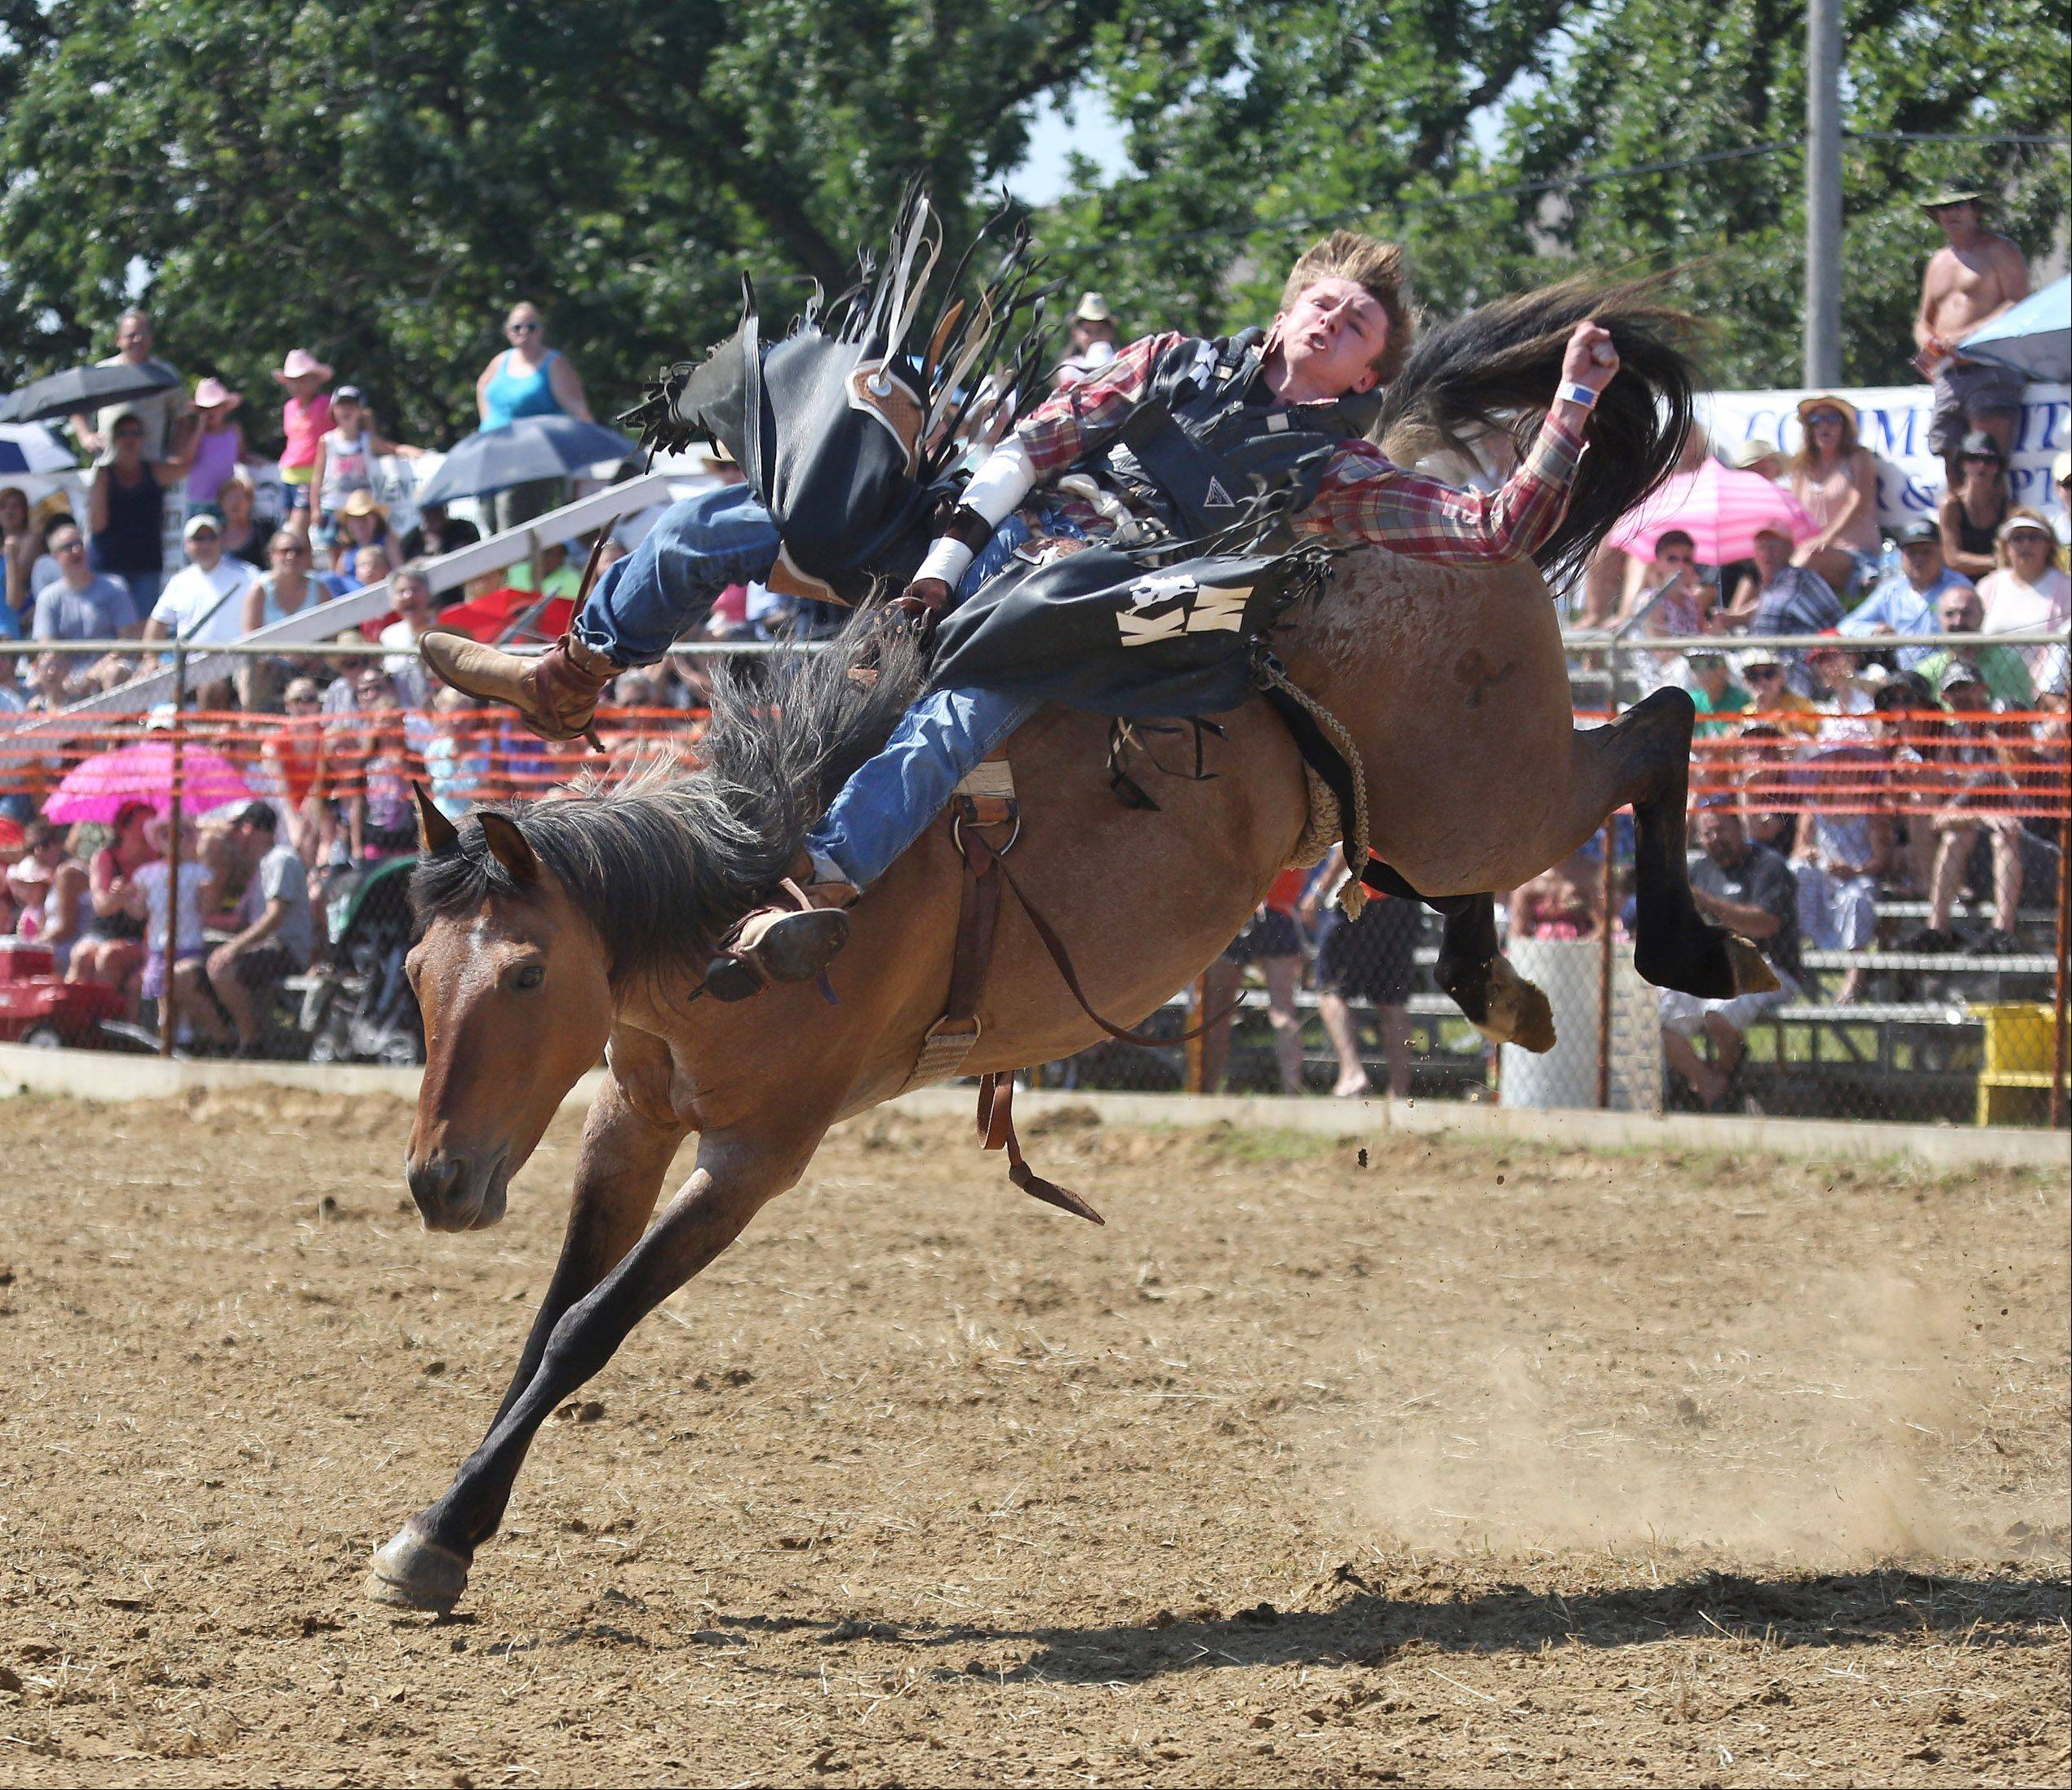 Mark Kreder, Jr. rides a bareback bronc during the 50th Annual IPRA Championship Wauconda Rodeo Sunday at Green Oaks Rodeo Grounds. The Wauconda Area Chamber of Commerce sponsored the event that featured a mechanical bull, pony rides and calf roping as well as the rodeo show.